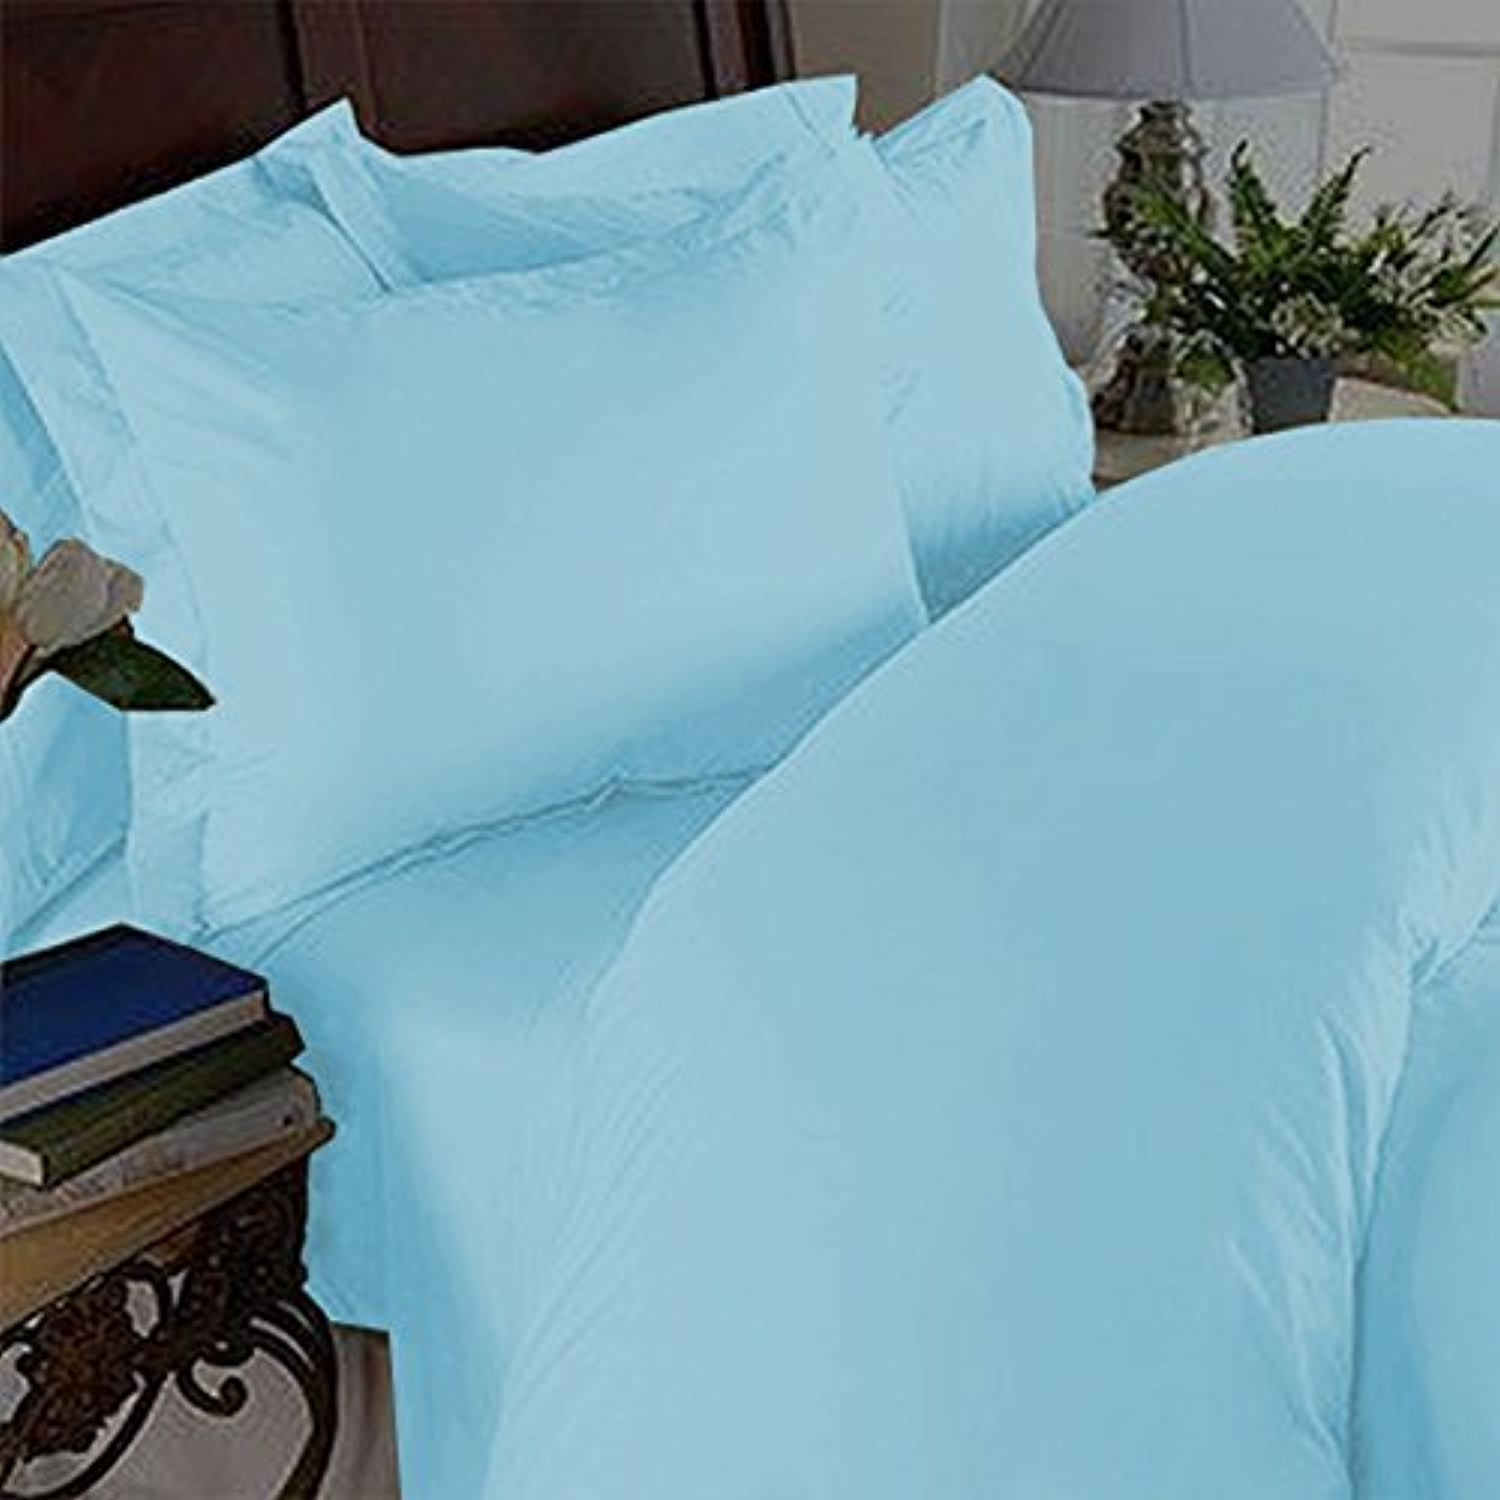 Elegant Comfort 3 Piece 1500 Thread Count Luxury Ultra Soft Egyptian Quality Coziest Duvet Cover Set, Full Queen, Aqua lumière bleu by Elegant Comfort